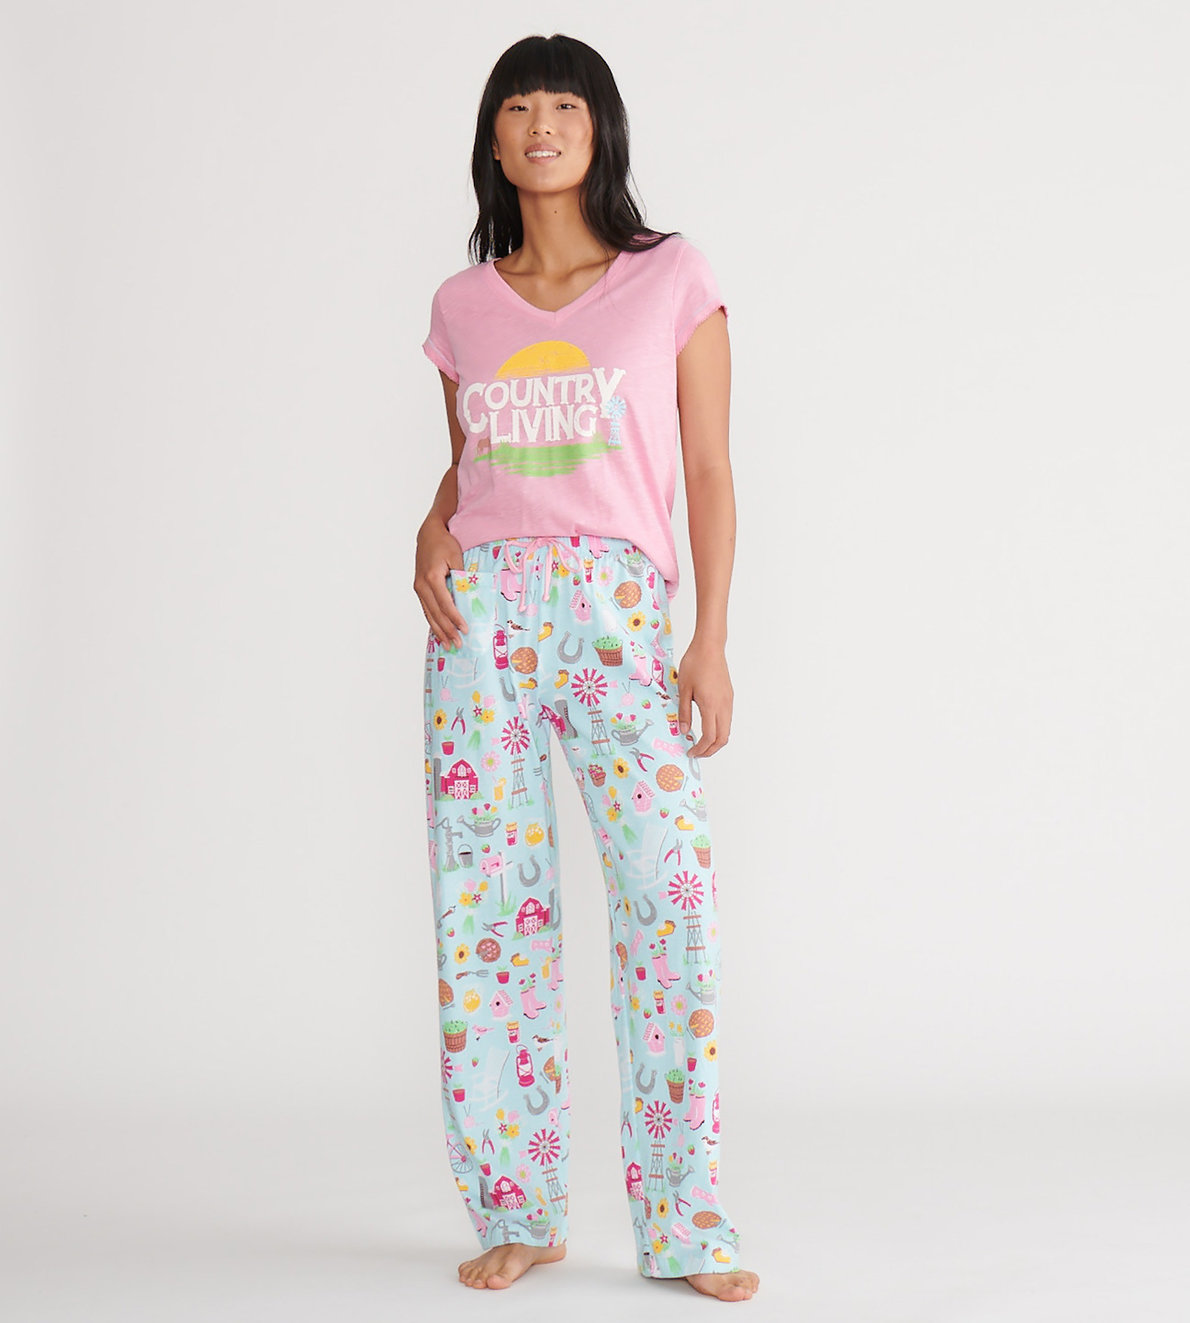 View larger image of Country Living Women's Tee and Pants Pajama Separates